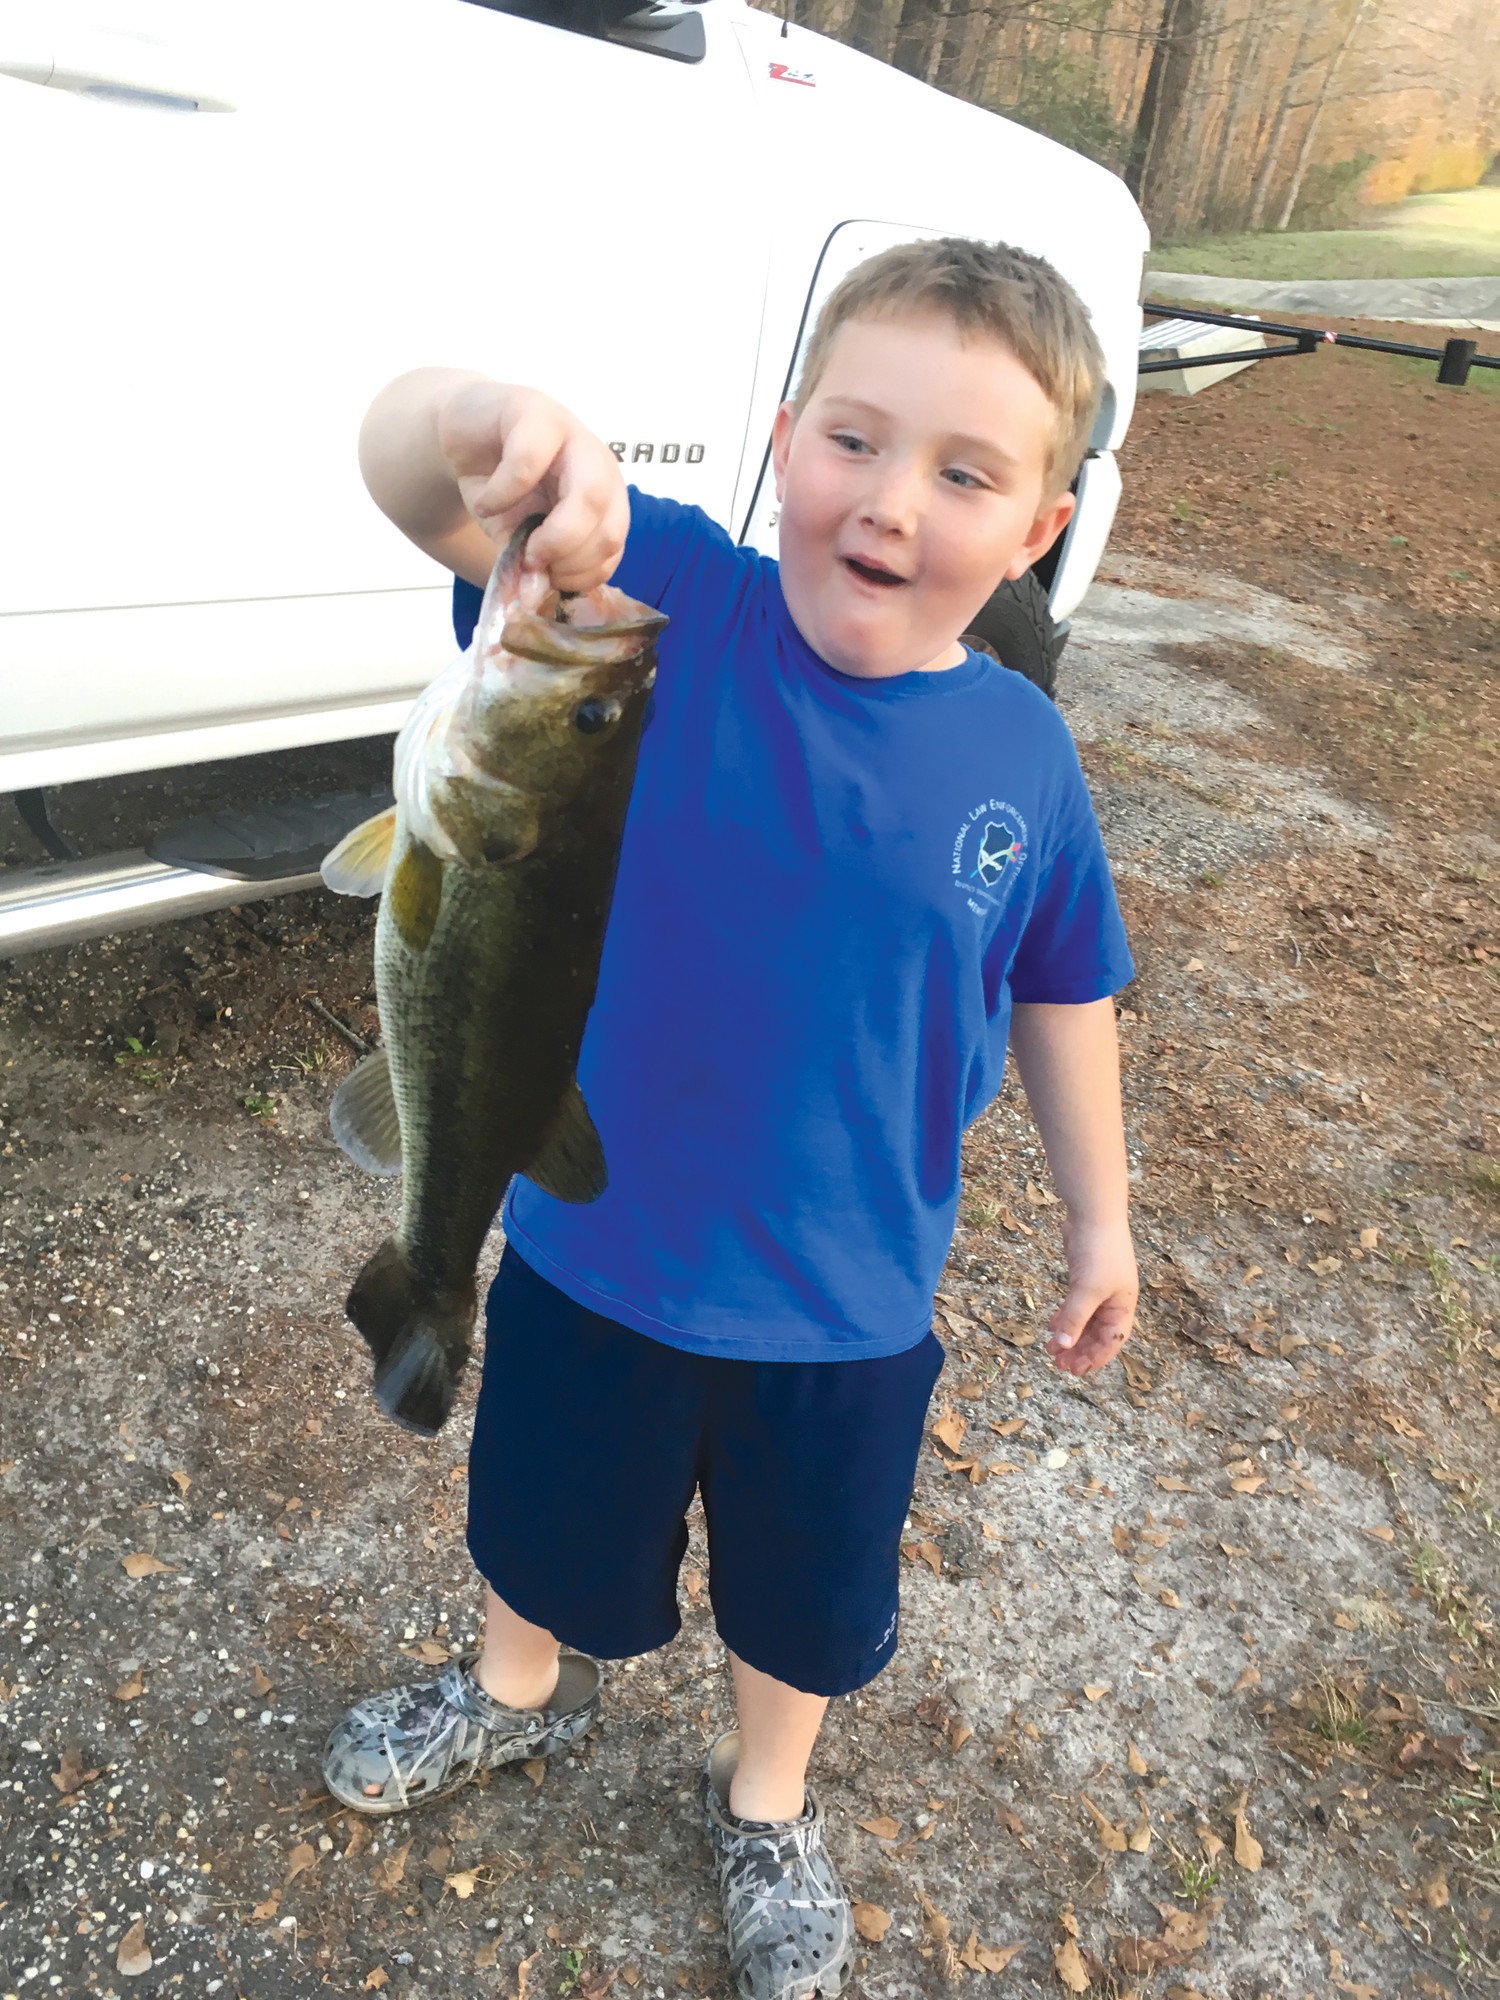 Robert M. Falls III, Trey, caught his biggest bass so far at 4 pounds on Feb. 23 while fishing with his dad.